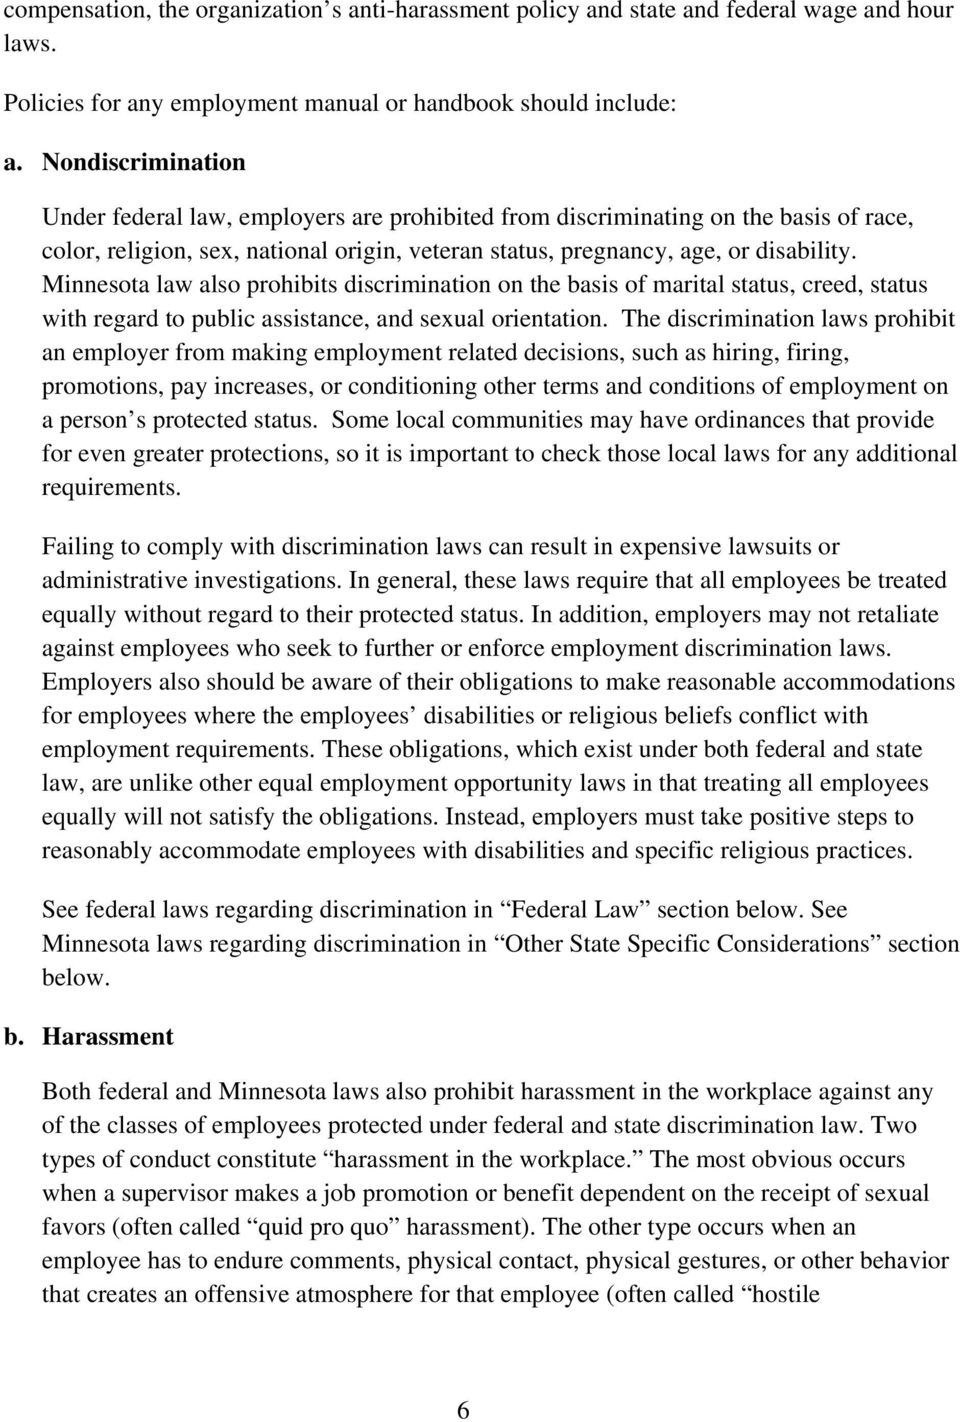 Minnesota law also prohibits discrimination on the basis of marital status, creed, status with regard to public assistance, and sexual orientation.